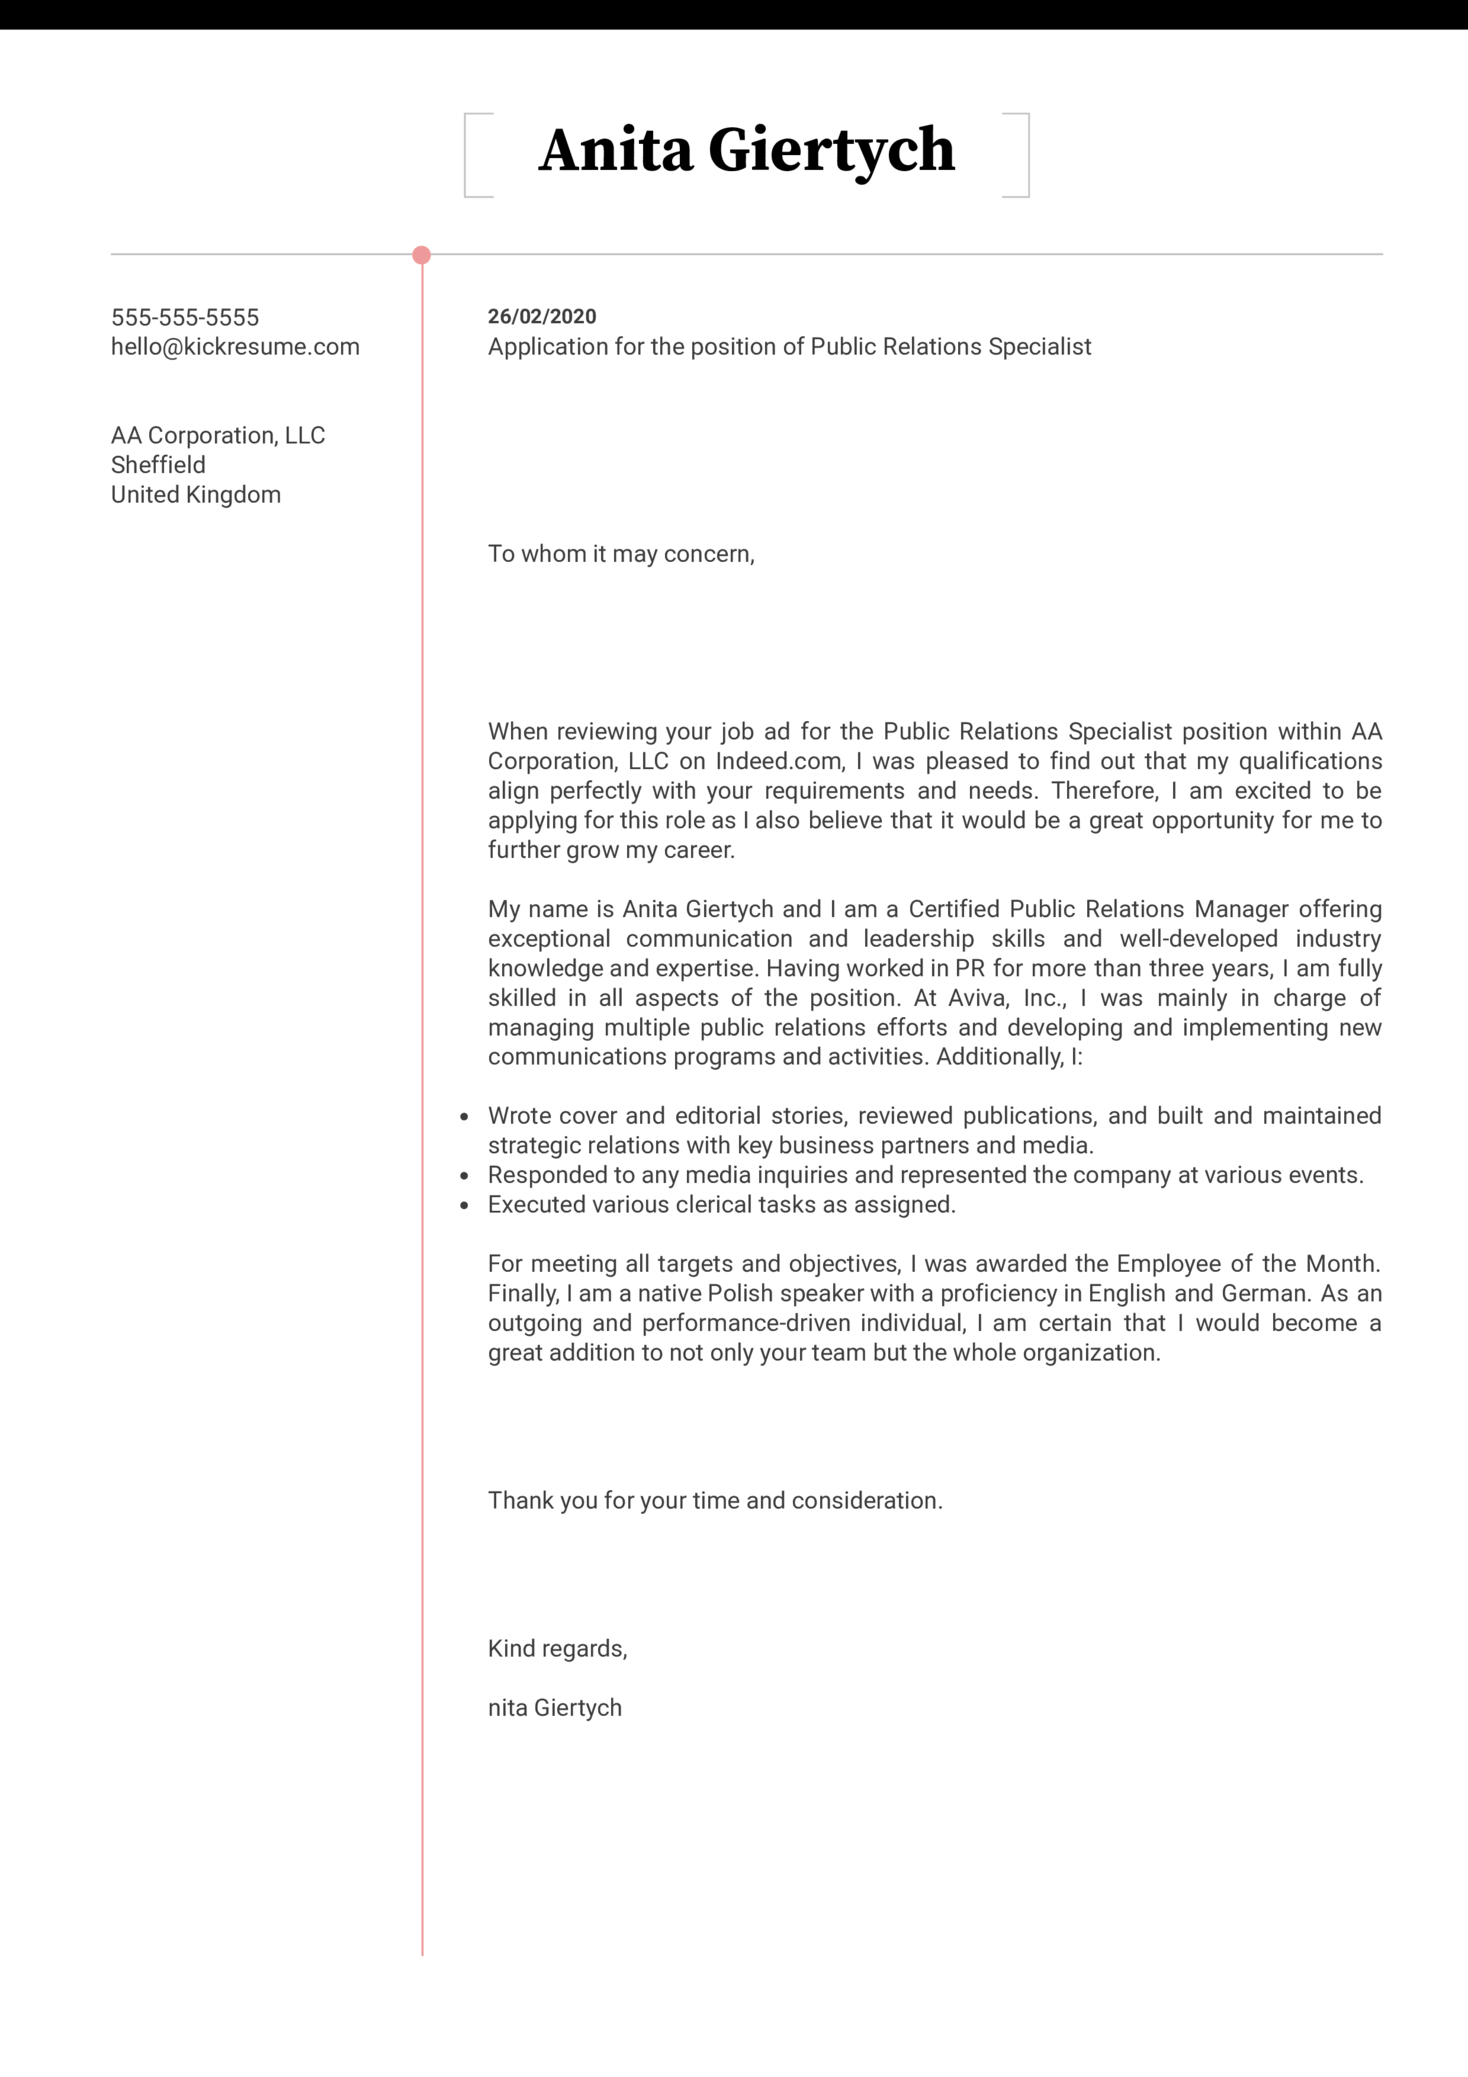 Public Relations Specialist Cover Letter Sample